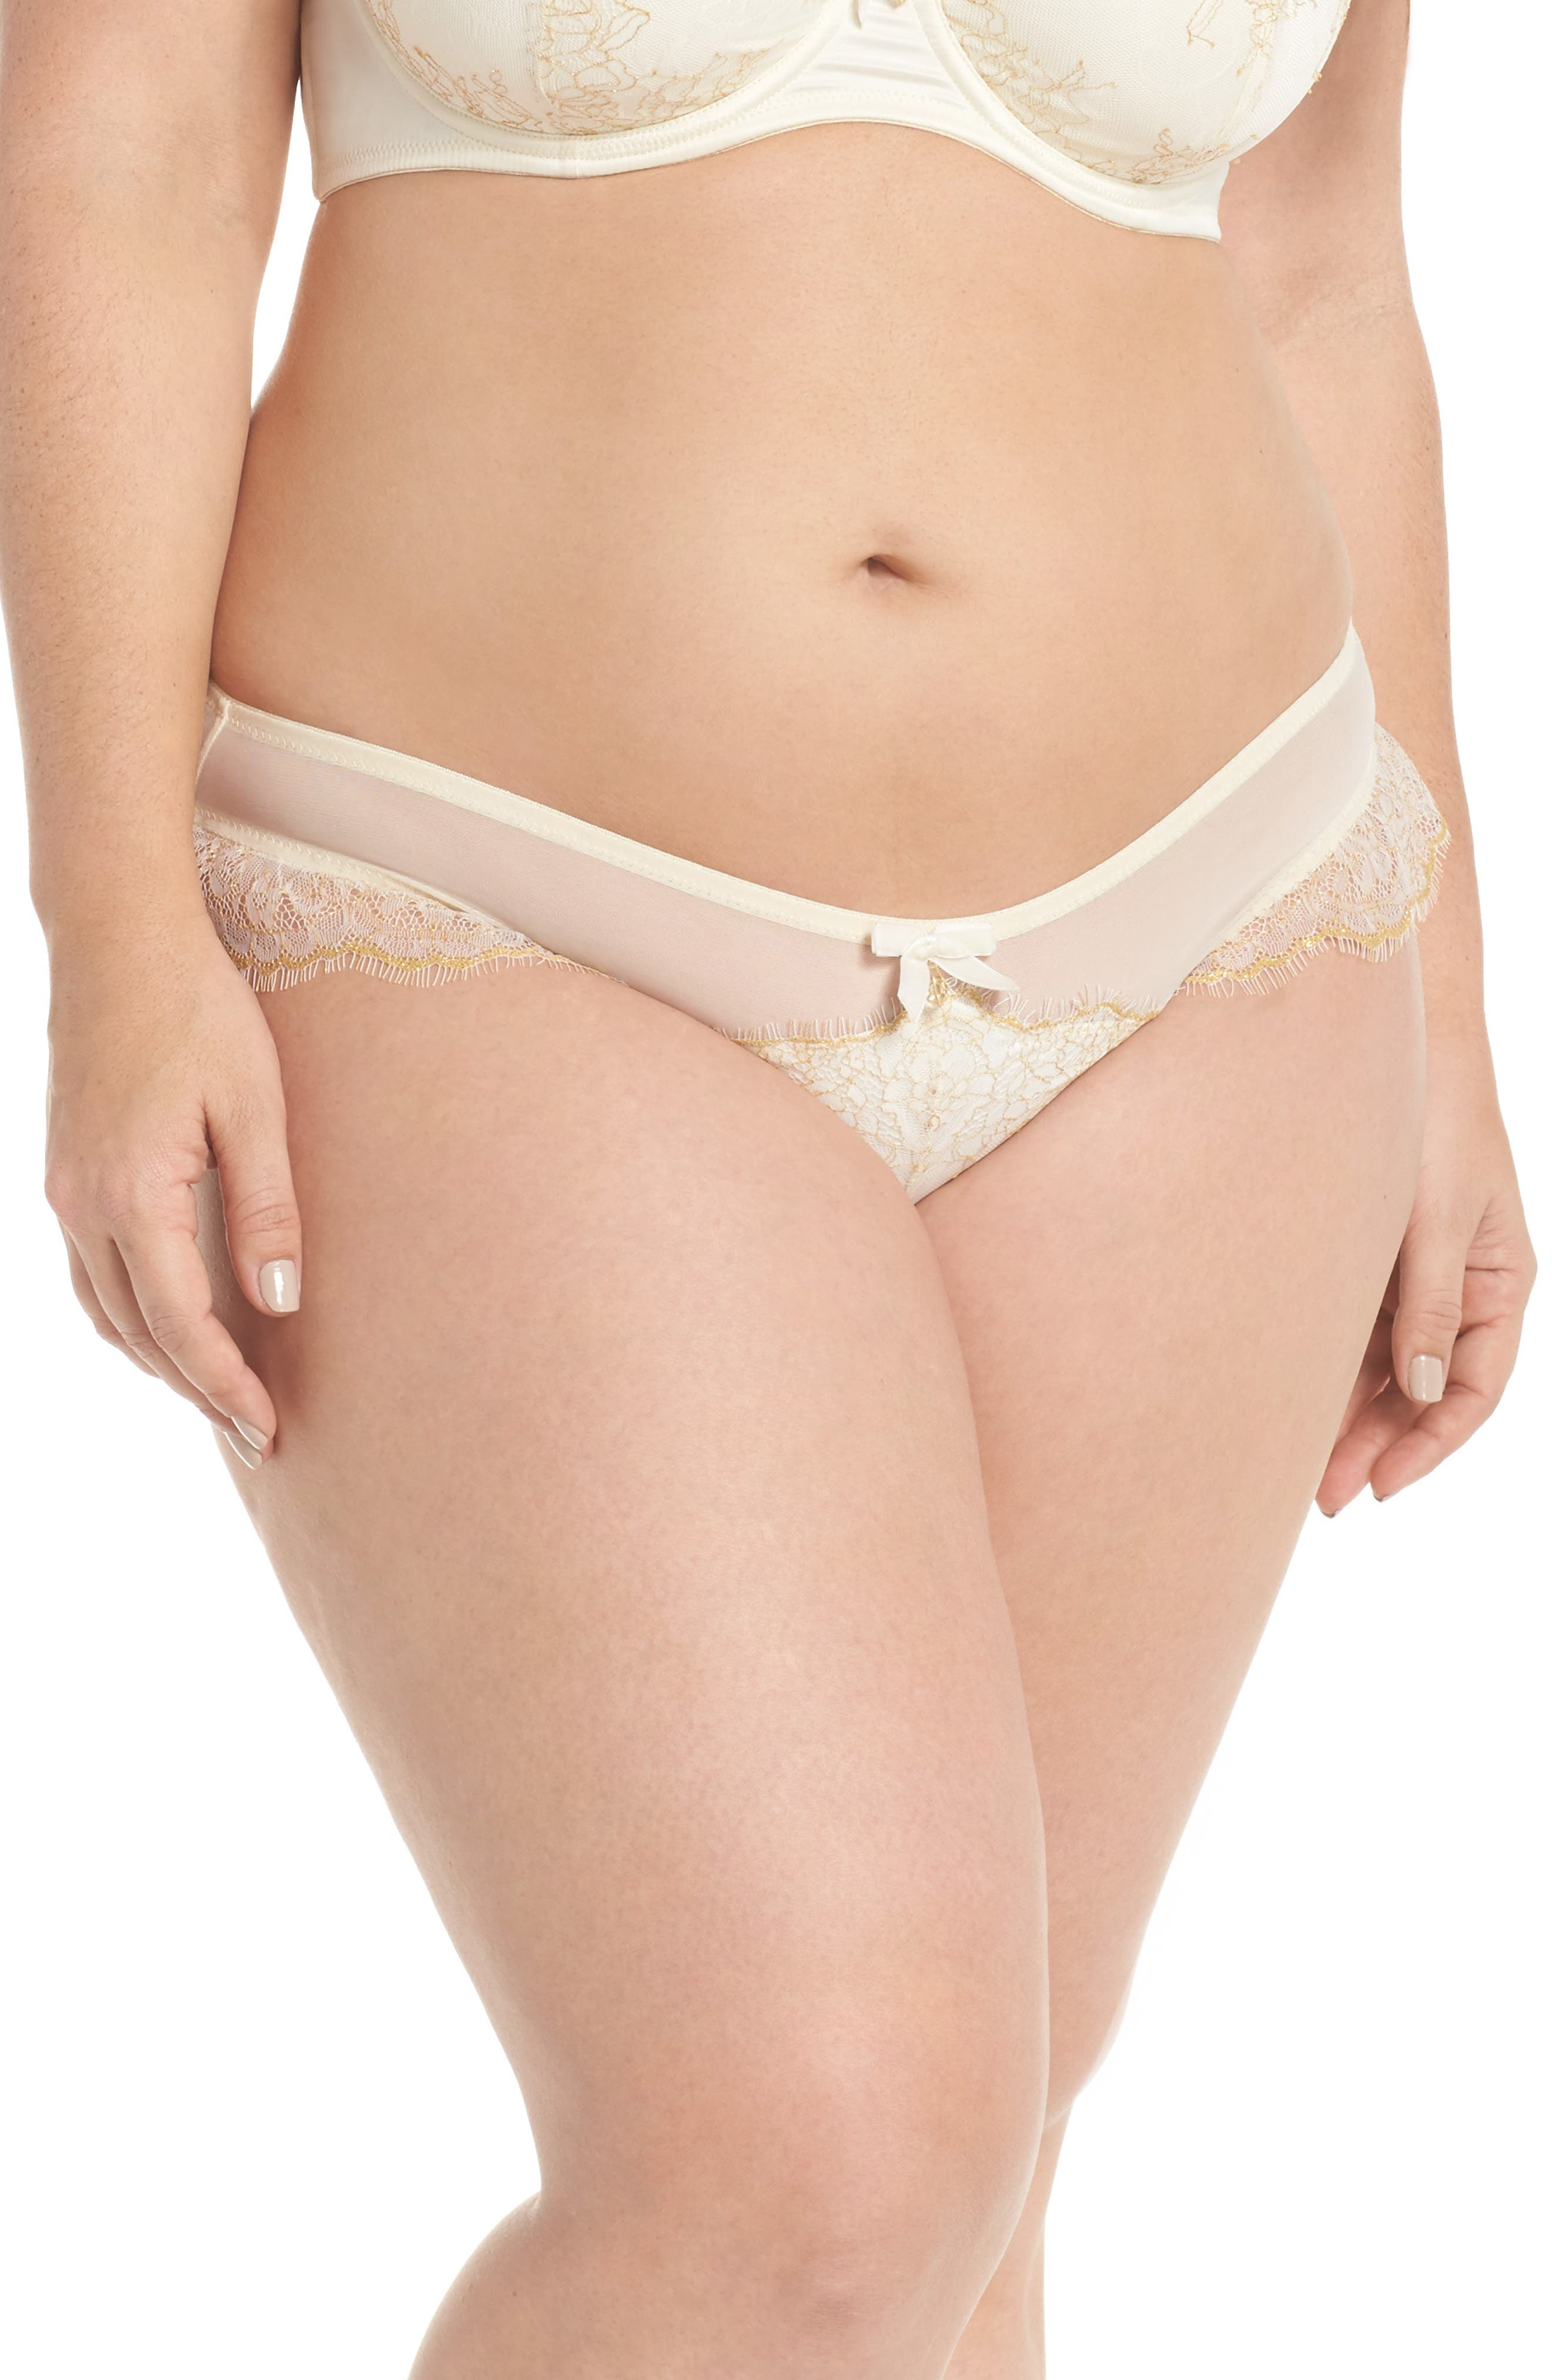 Karine Lace Panties,                         Main,                         color, 900